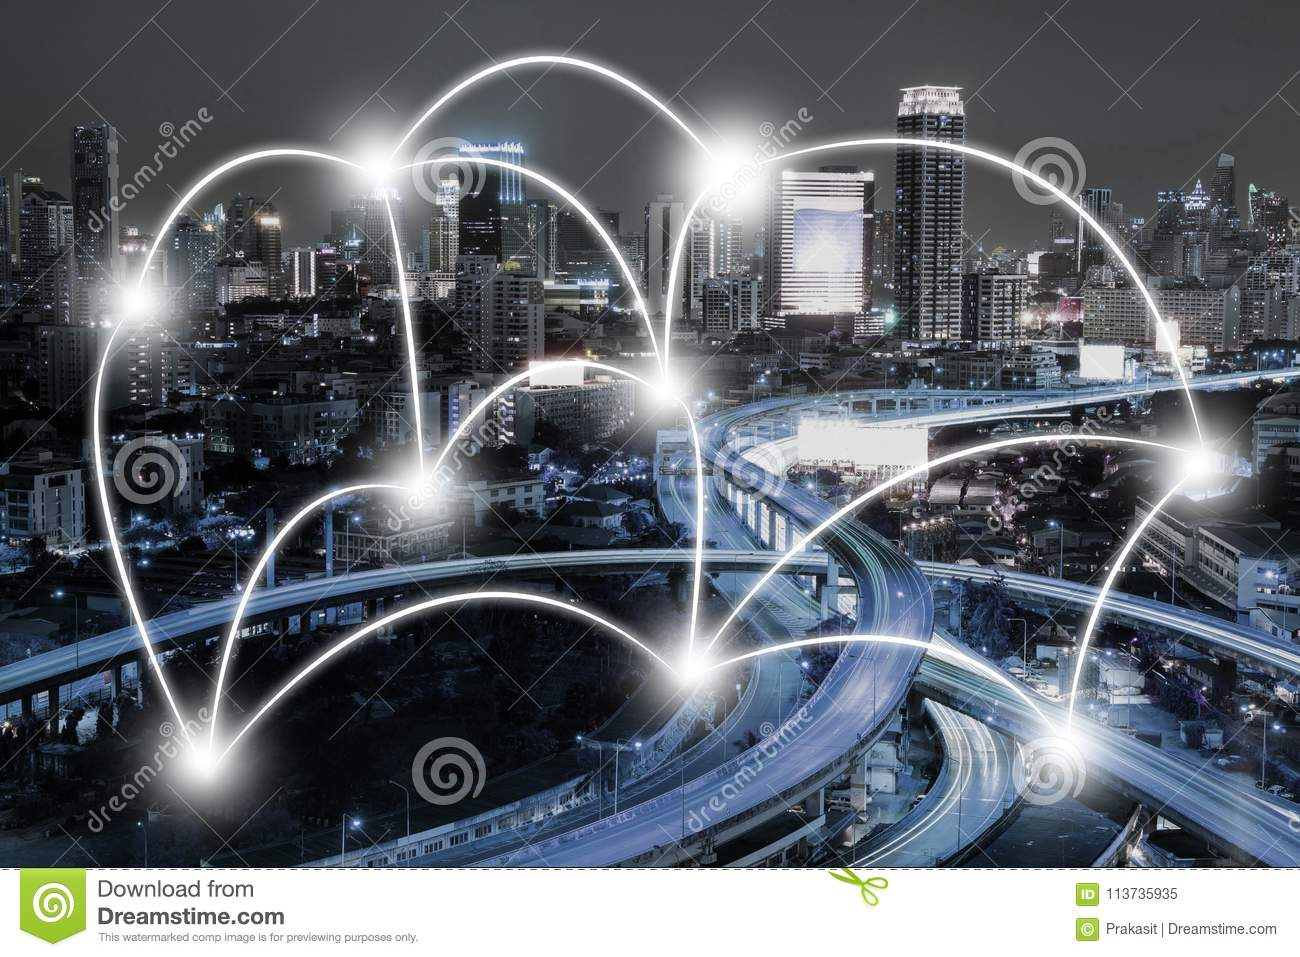 Cityscape and network connection concept in the city at night. B